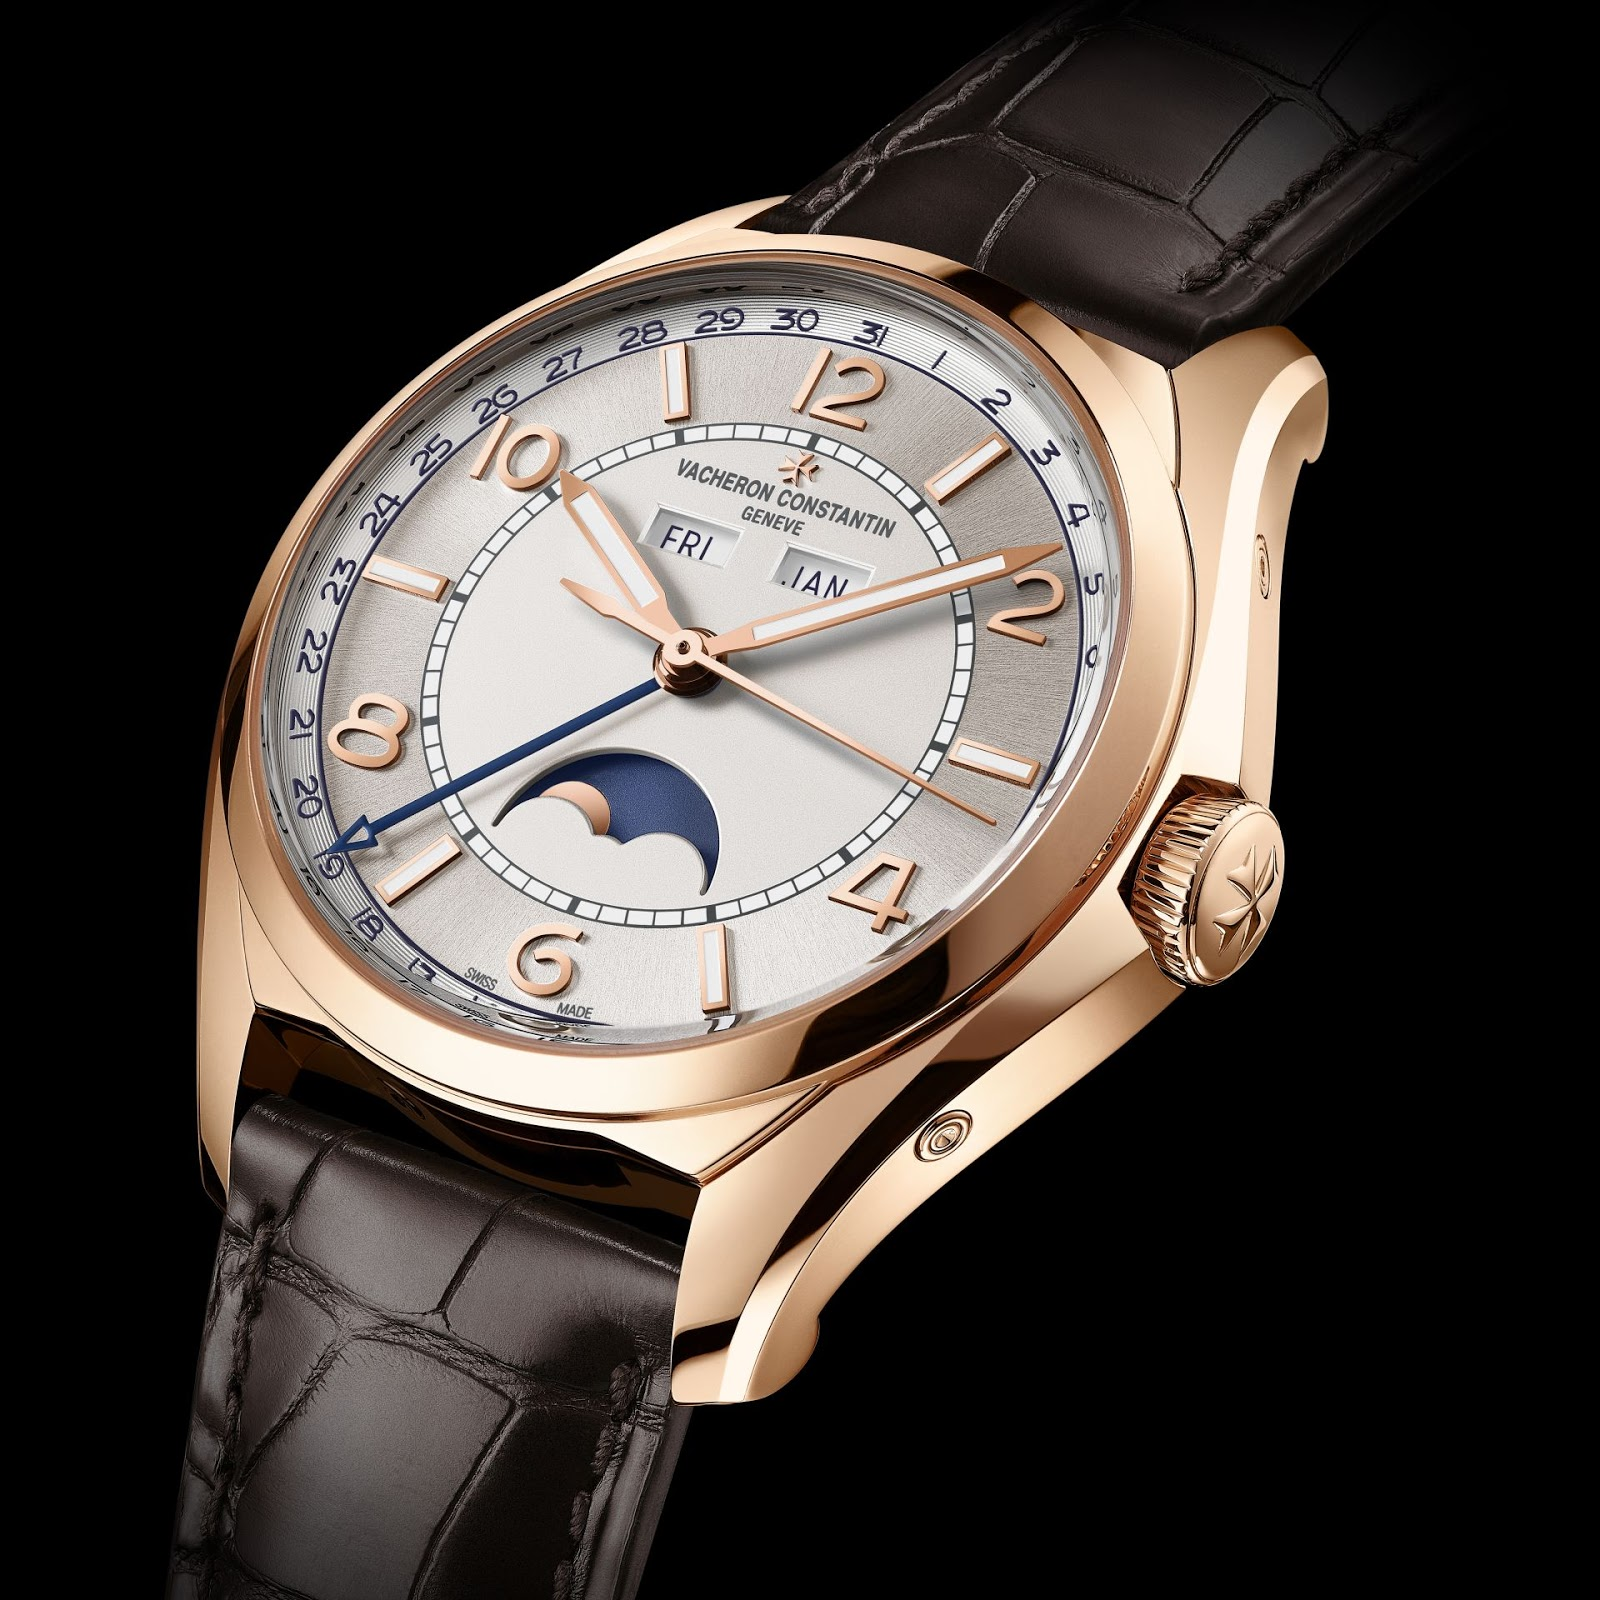 FIFTYSIX Complete Calendar With Precision Moon Phase (Ref 4000E000R-B438) advise